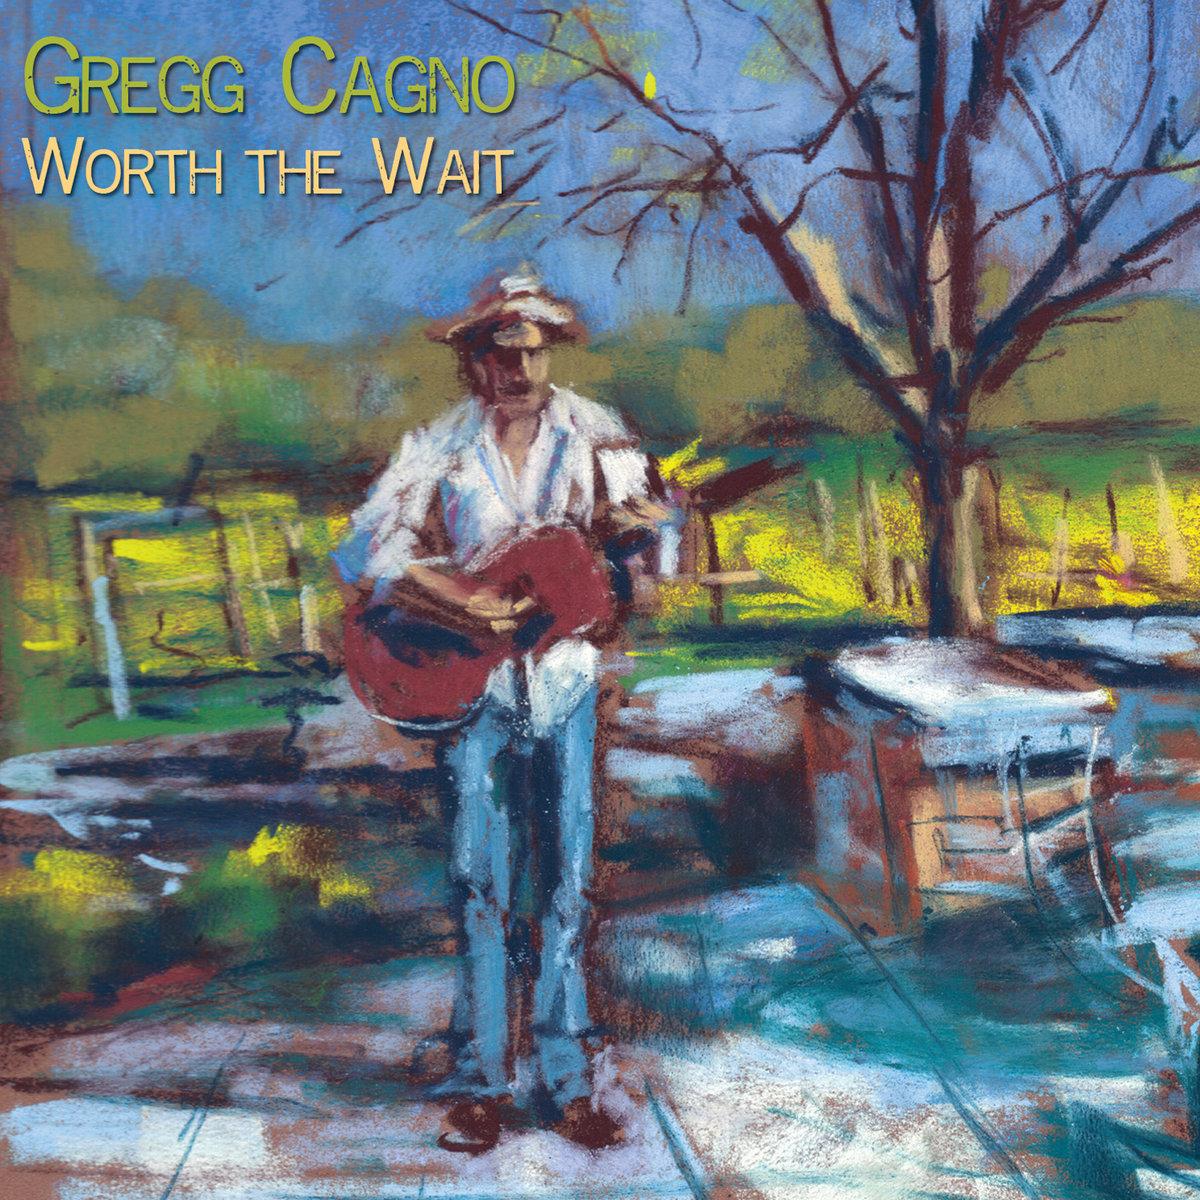 Worth the Wait – MP3 download | Gregg Cagno